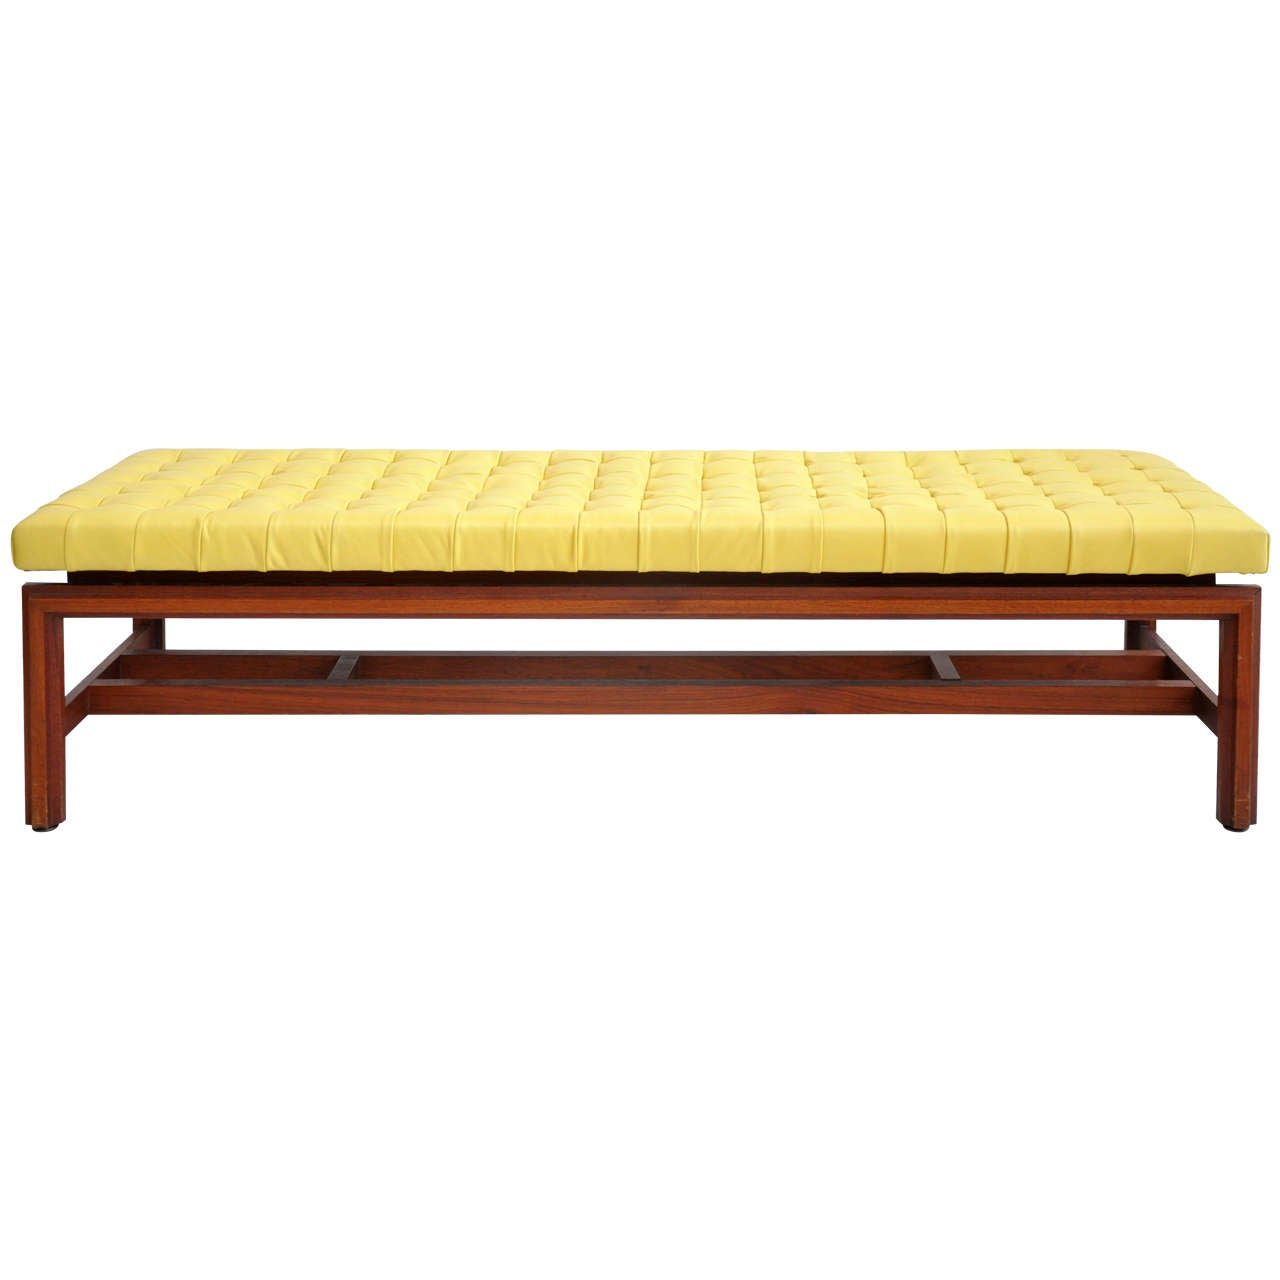 Vintage Tufted Yellow Leather Bench